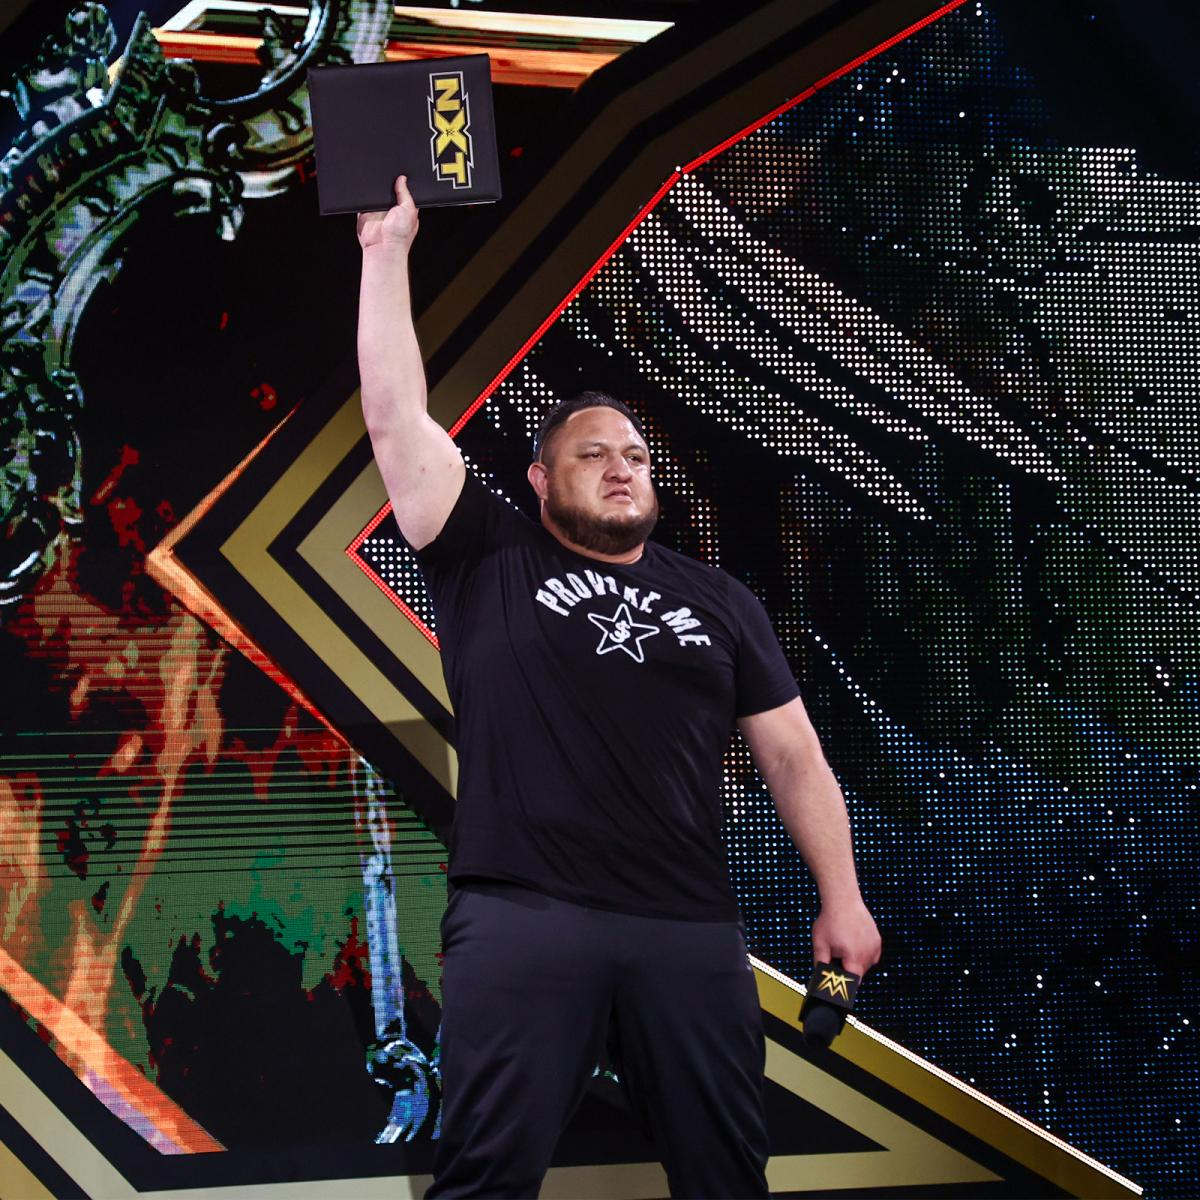 GM補佐から選手への復帰、NXT王座挑戦が電撃的に決まったサモア・ジョー(C)2021 WWE, Inc. All Rights Reserved.